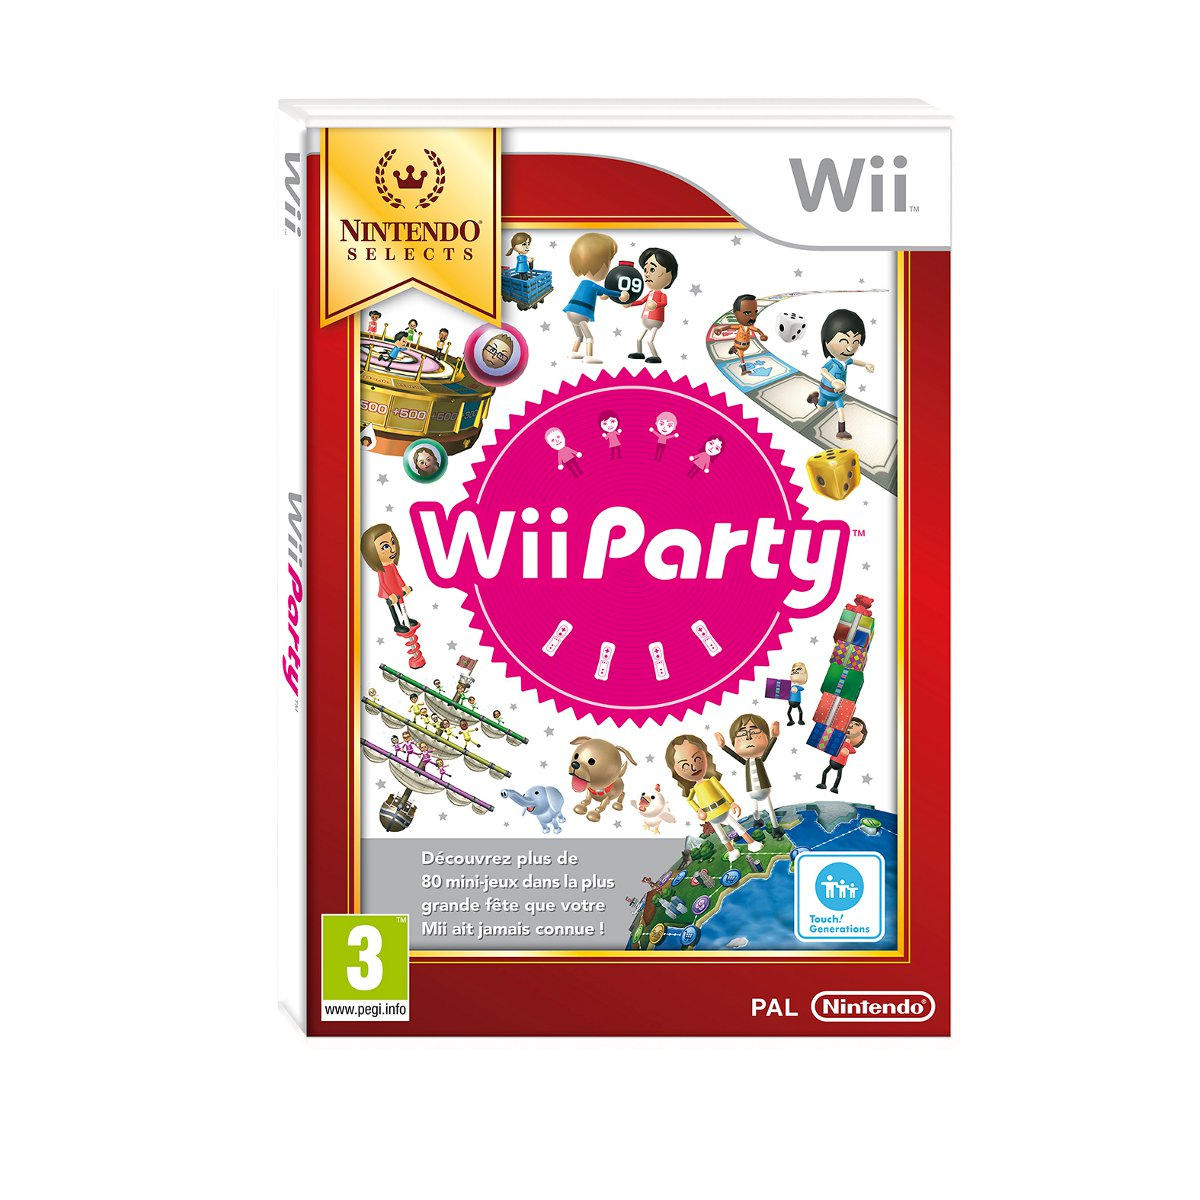 LDLC.com Wii Party Nintendo Selects (Wii)  Wii Party Nintendo Selects (Wii)